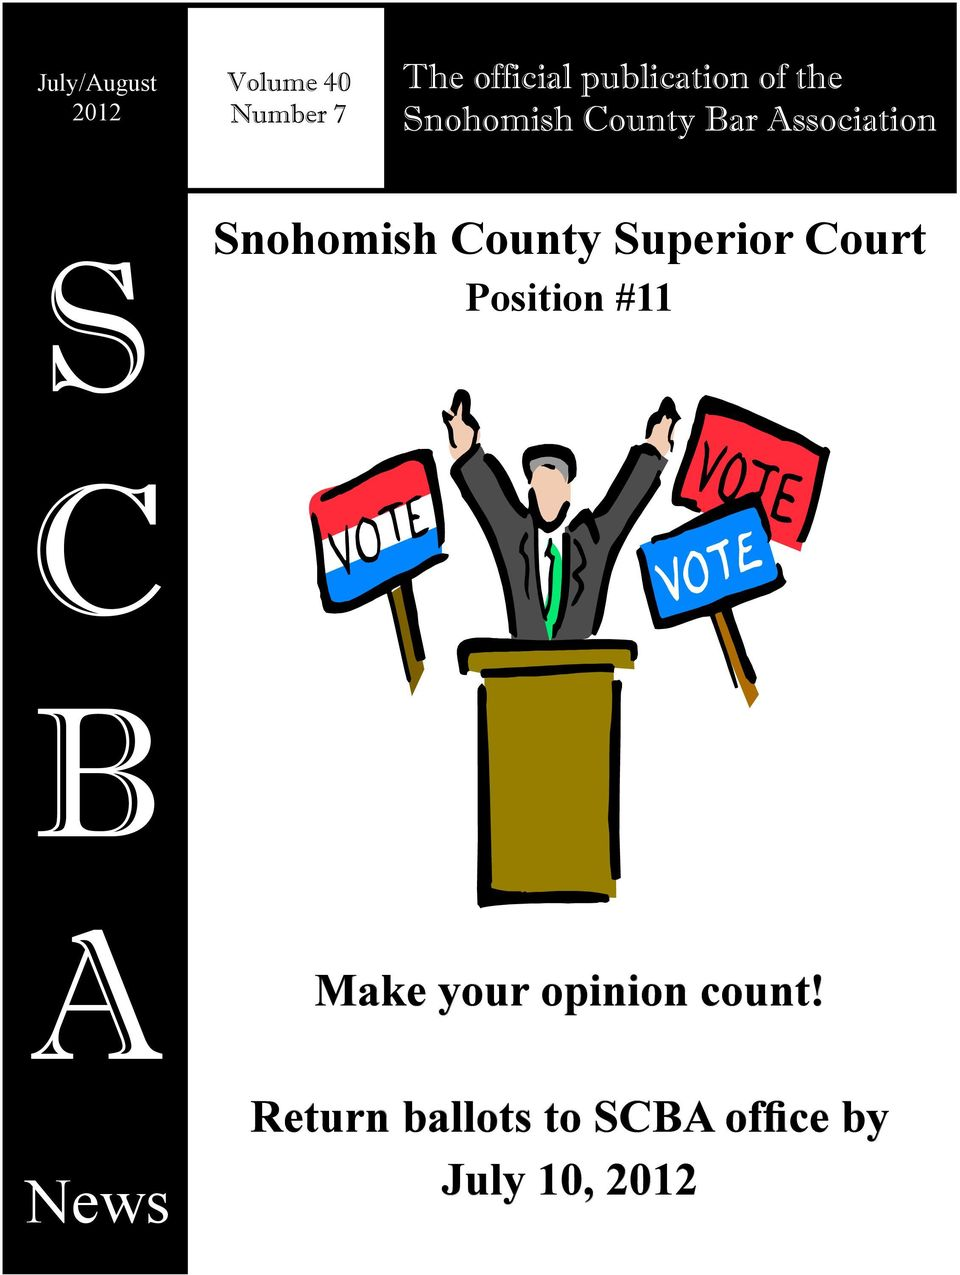 Snohomish County Superior Court Position #11 C B A News